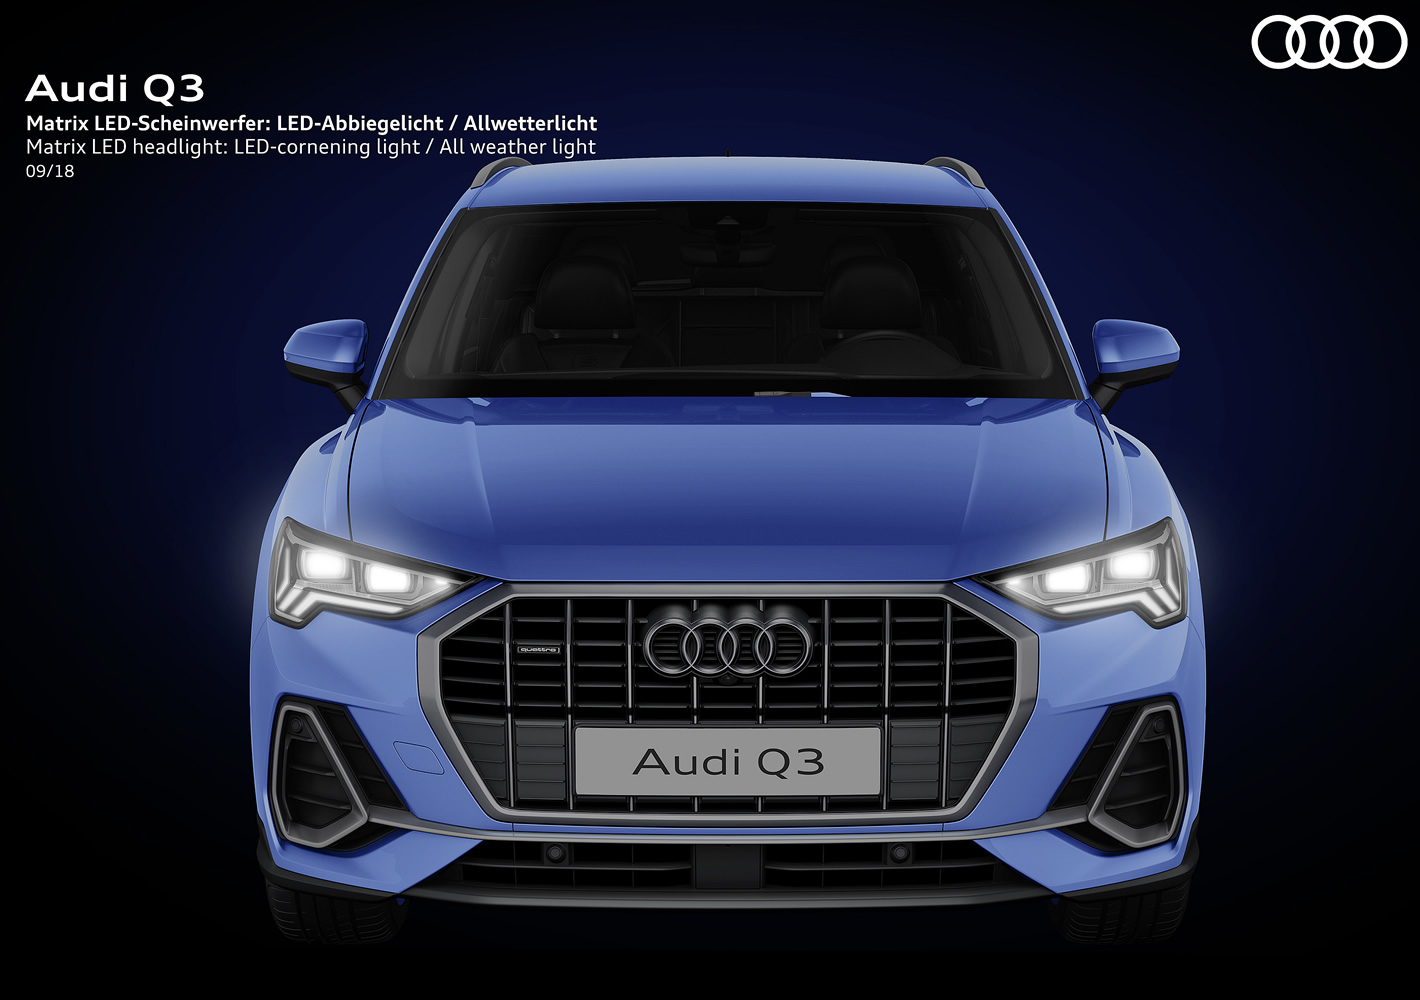 Audi Q3 2019 - reflektory Matrix LED